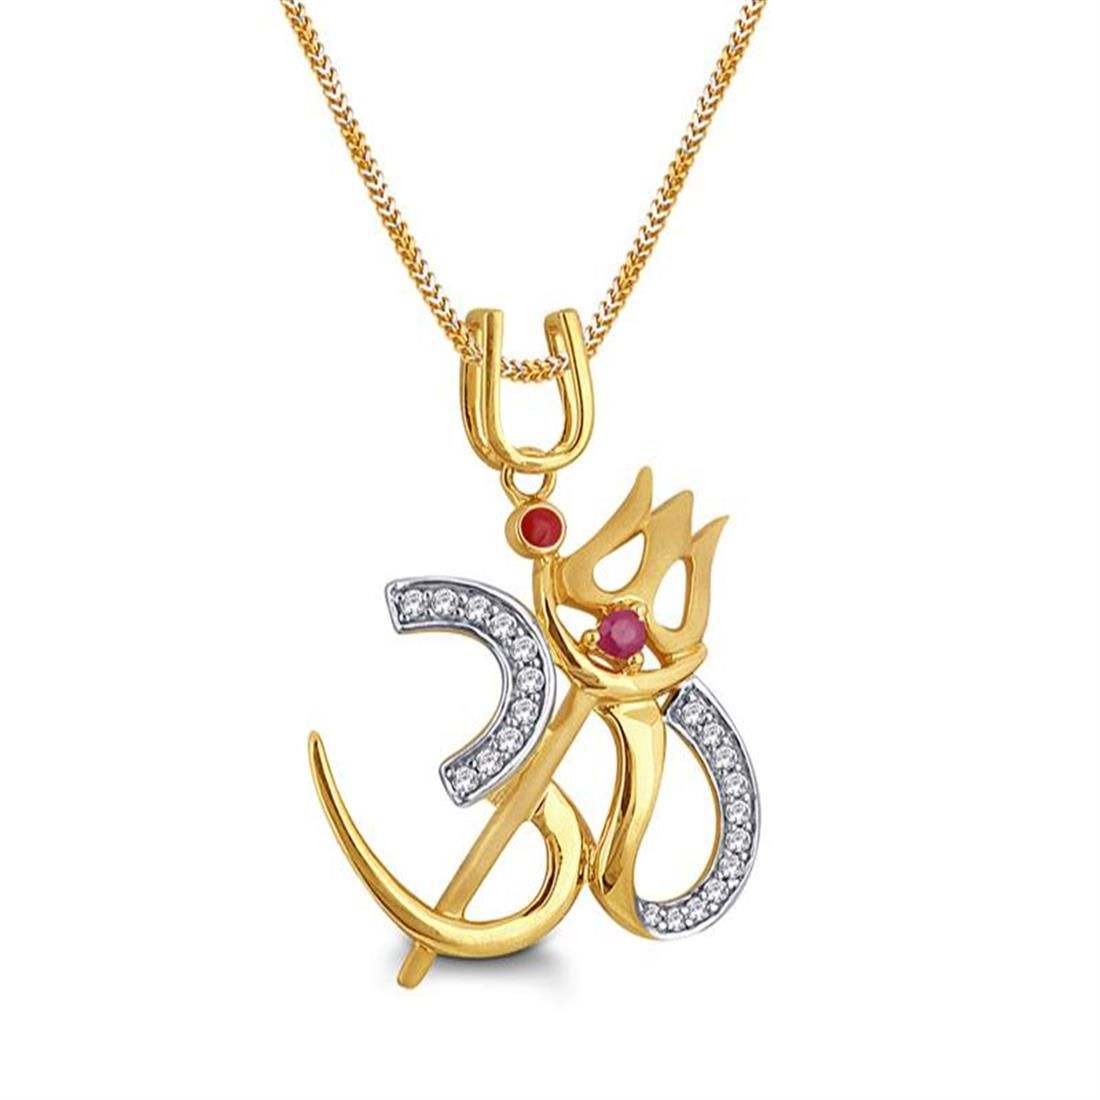 Om diamond pendant the value of life taken to new horizon with the diamond om diamond pendant mozeypictures Image collections